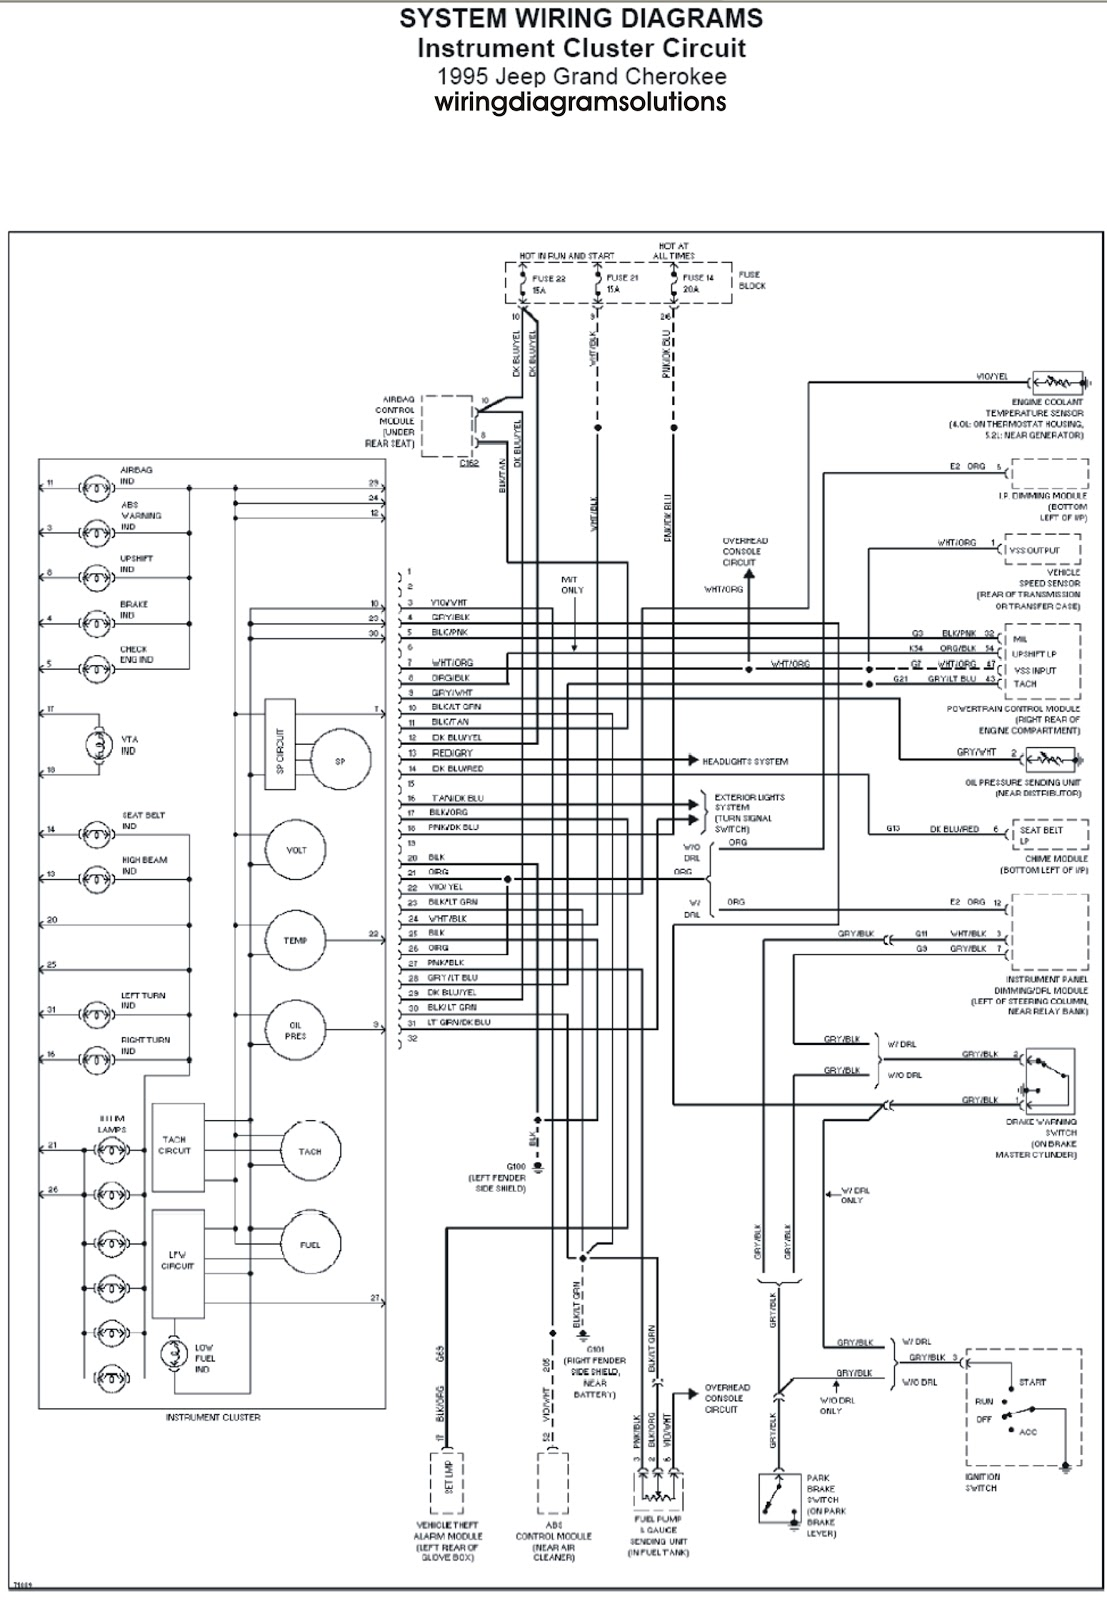 94 Jeep Grand Cherokee Wiring Schematic | Wiring Liry  Jeep Grand Cherokee Wiring Schematic on